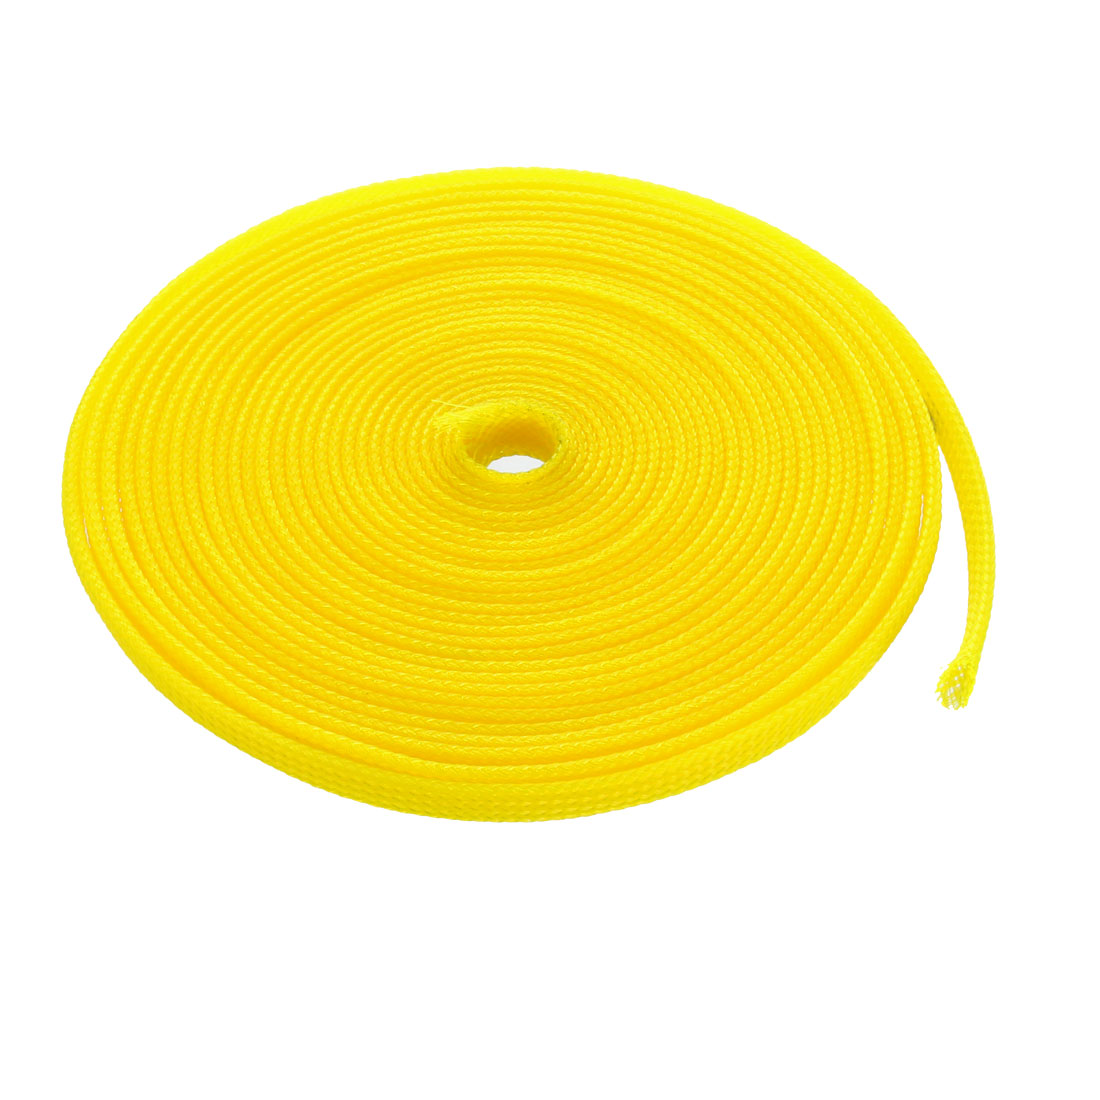 6mm Dia Tight Braided PET Expandable Sleeving Cable Wire Wrap Sheath Yellow 5M